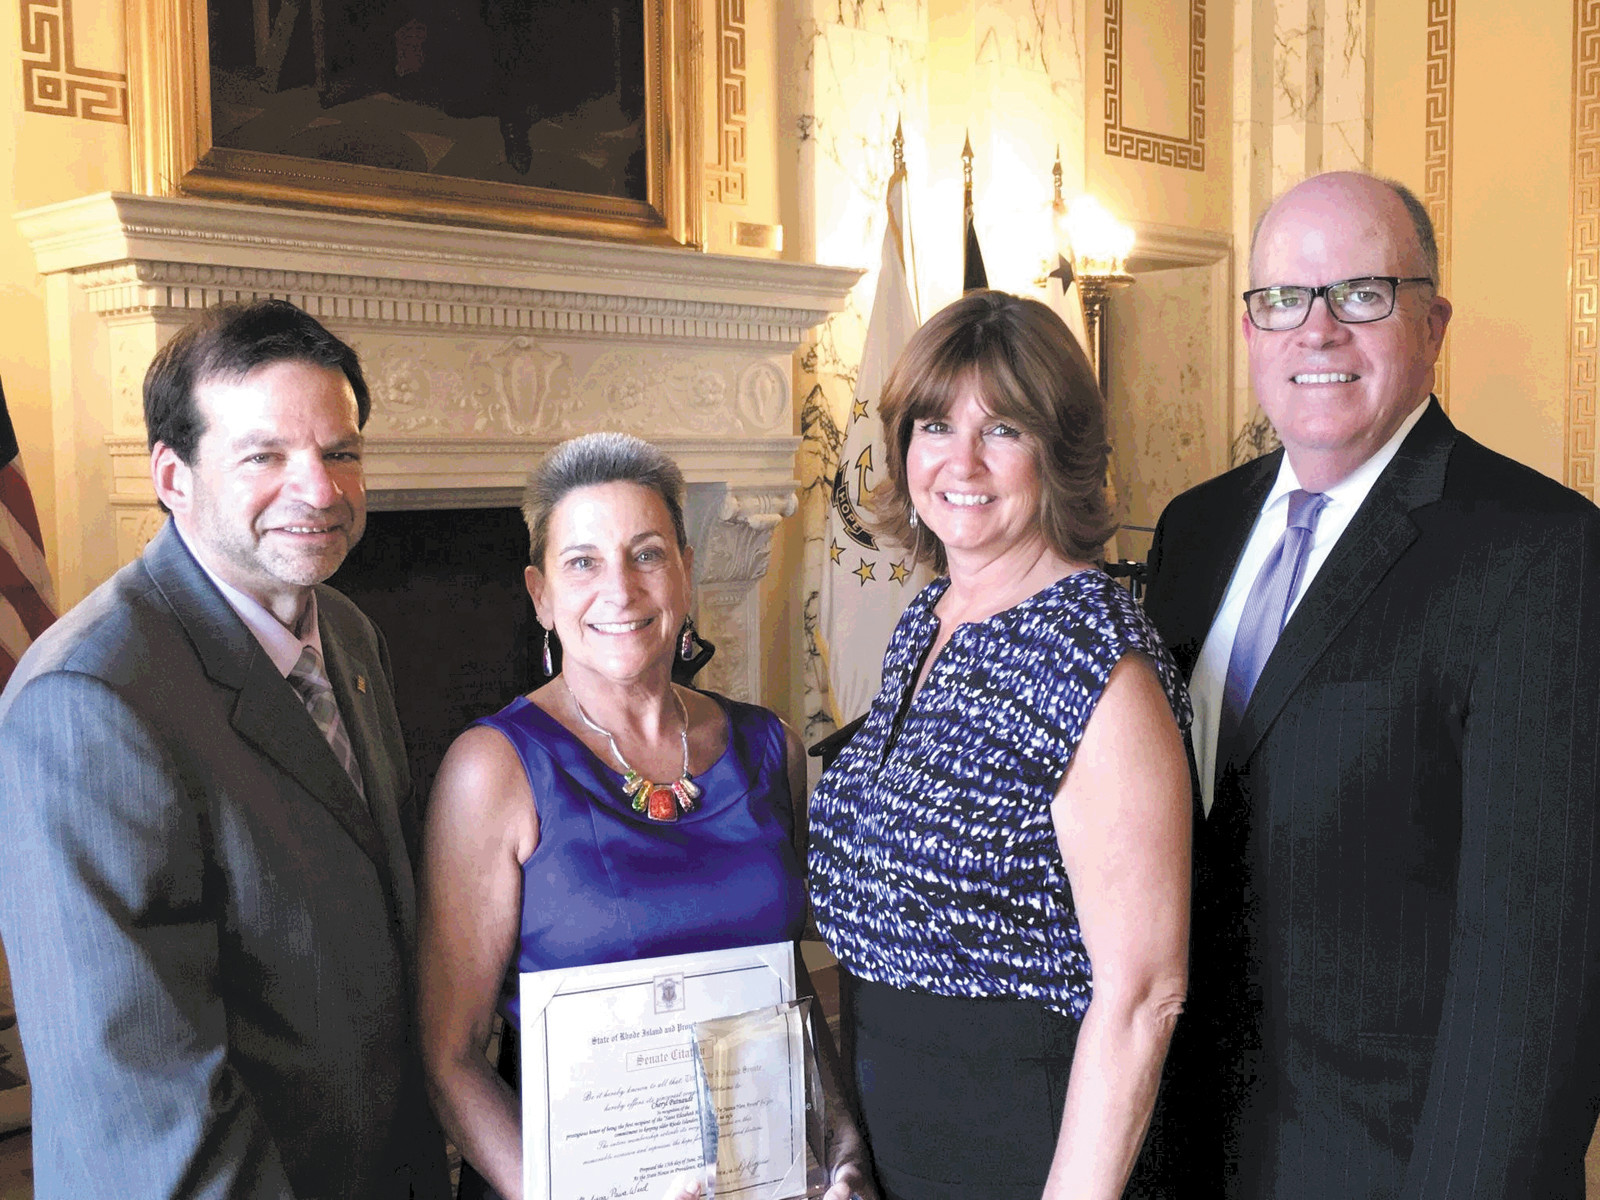 ELDER JUSTICE HERO: Cheryl Patnaude was awarded the Elder Justice Hero Award on Elder Abuse Awareness Day, June 15, at a ceremony at the State House. From left are Steve Horowitz, president and CEO Saint Elizabeth Community, Patnaude, Kathy Parker Director of admissions Saint Elizabeth Community and Charles Fogarty director of the division of elderly affairs.